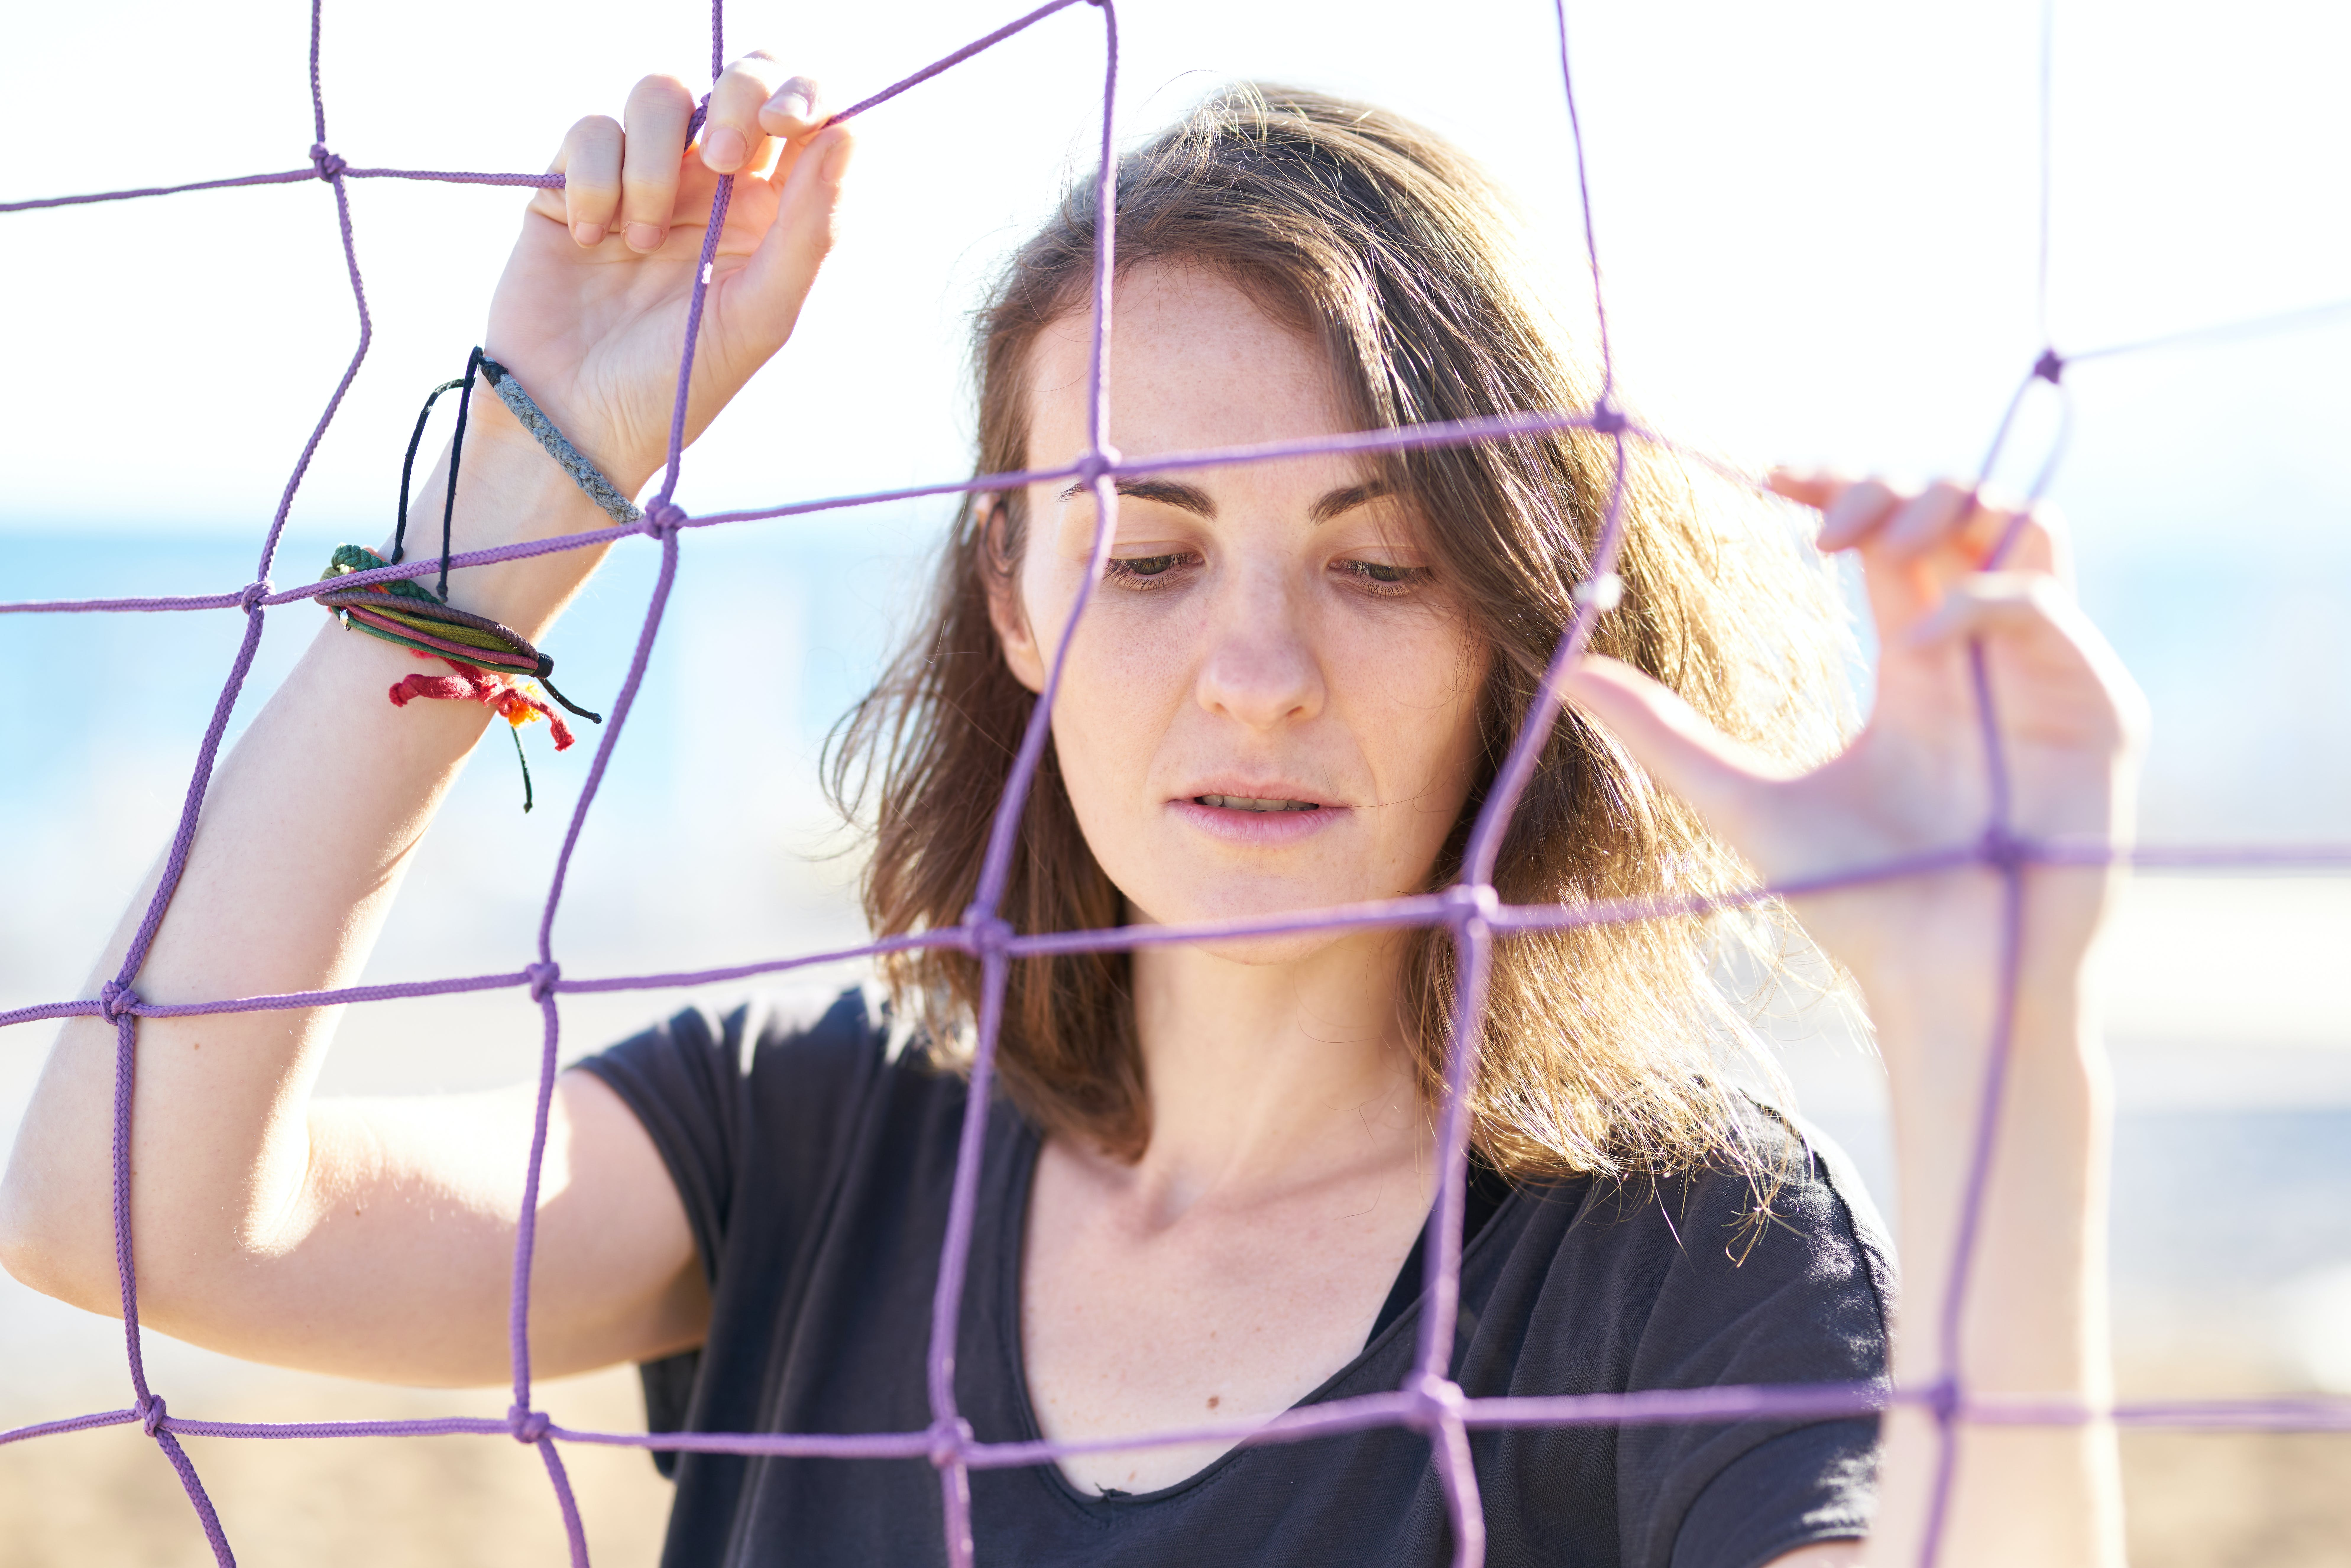 Photo Of Woman Holding Net